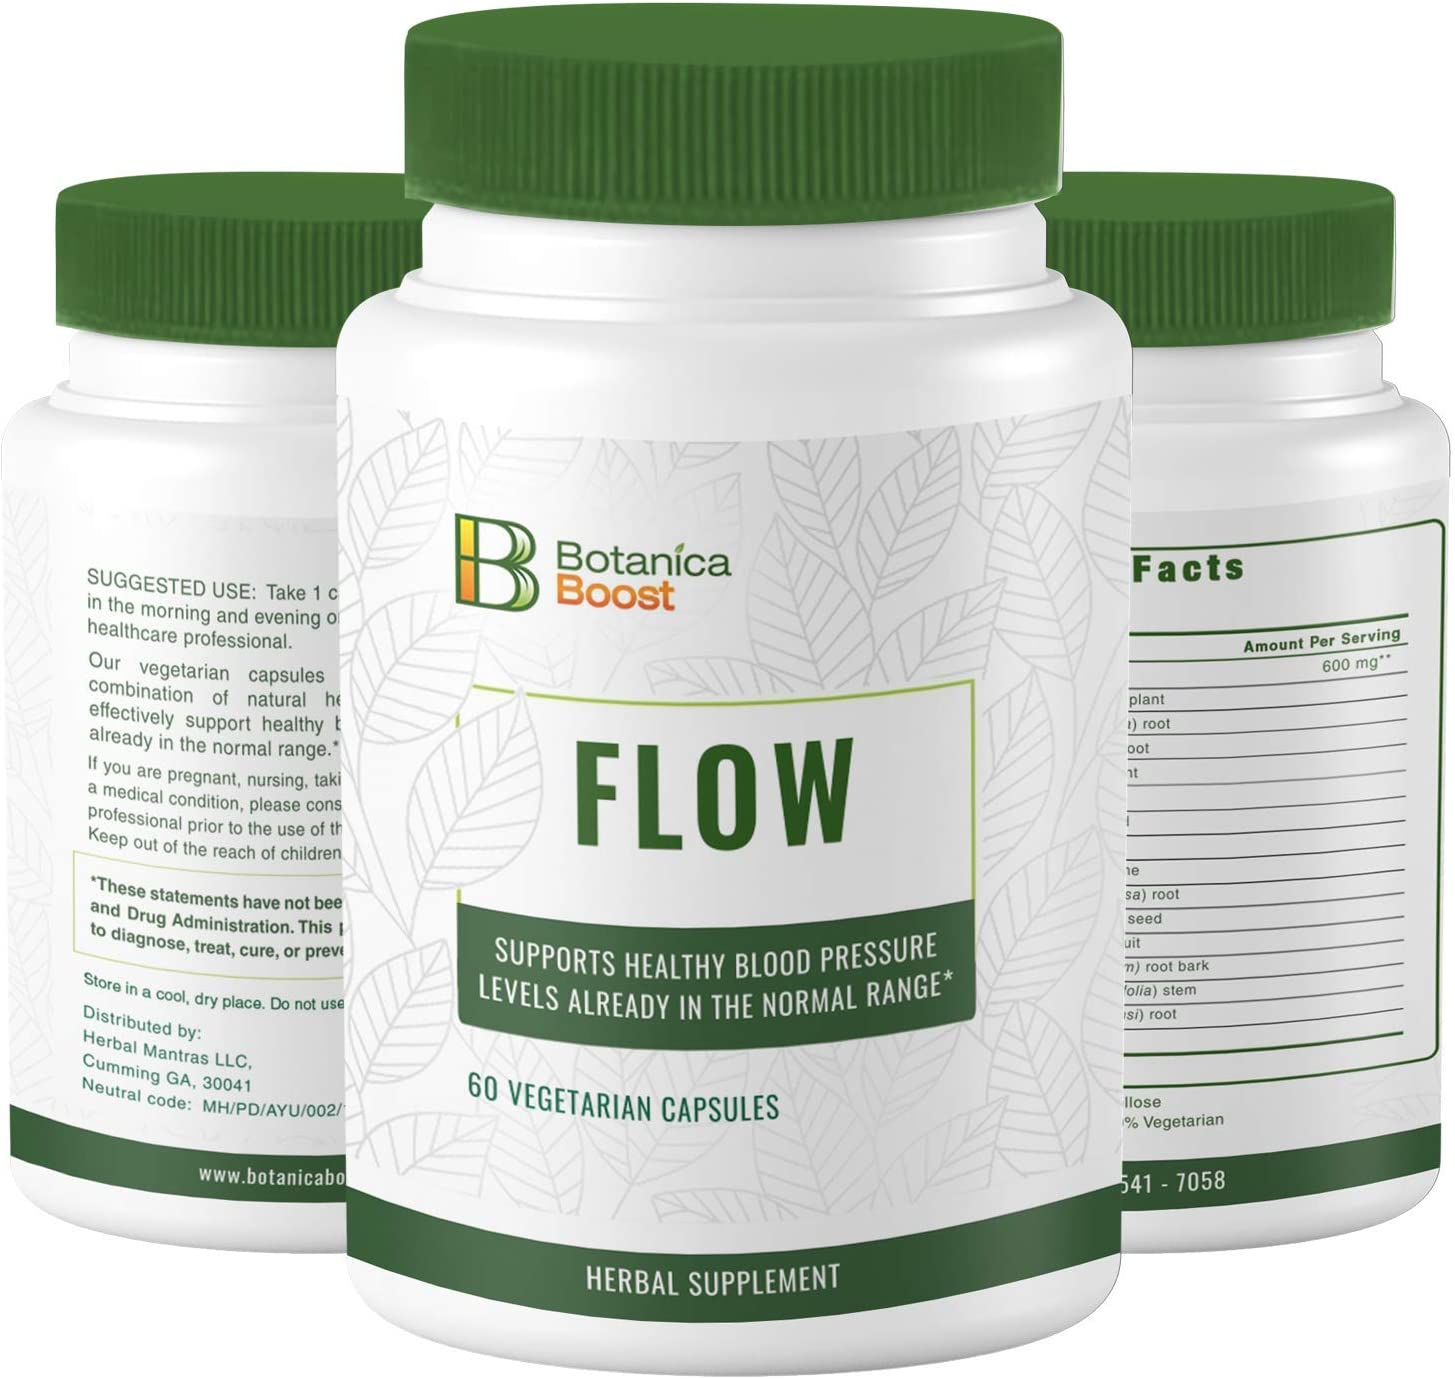 Botanica Boost Flow 600 mg Herbal Supplement Supports Healthy Blood Pressure Levels Already in Normal Range with Ashwagandha, Bacopa Monnieri and Rauwolfia Serpentina for Cardiovascular Health (60)